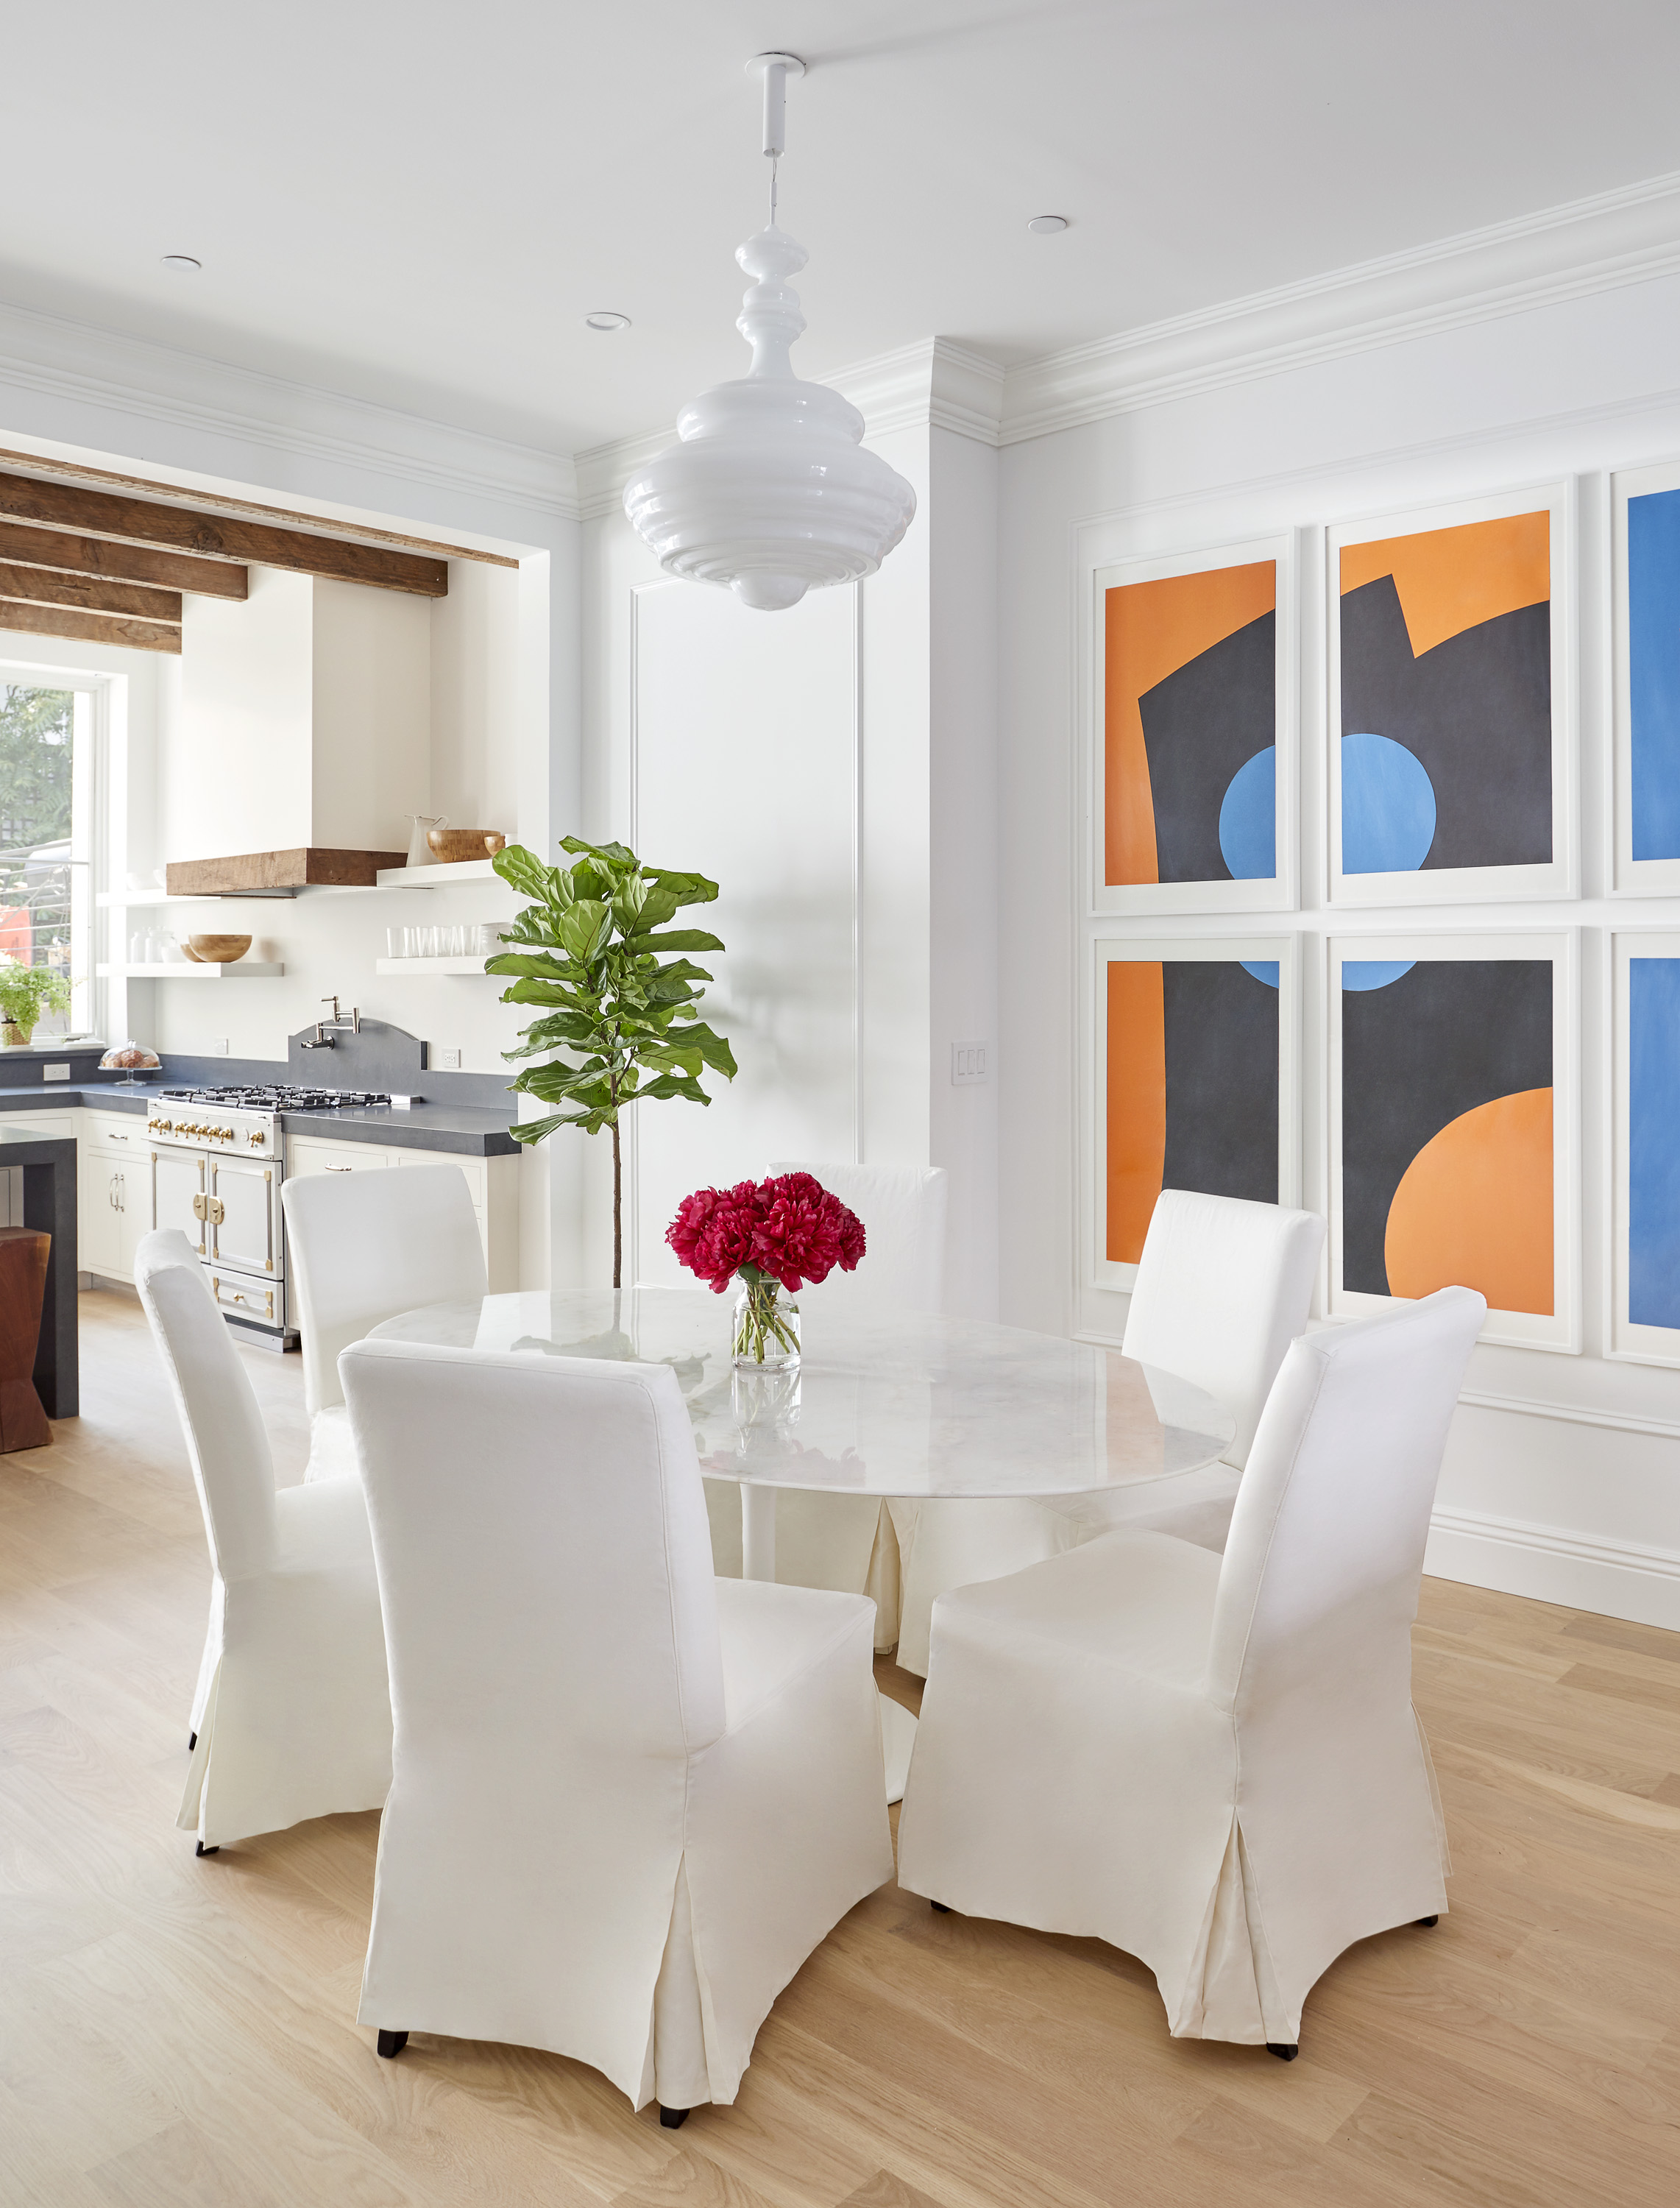 TBHCo_1706_56GarfieldPlace_227_HiRes.jpg